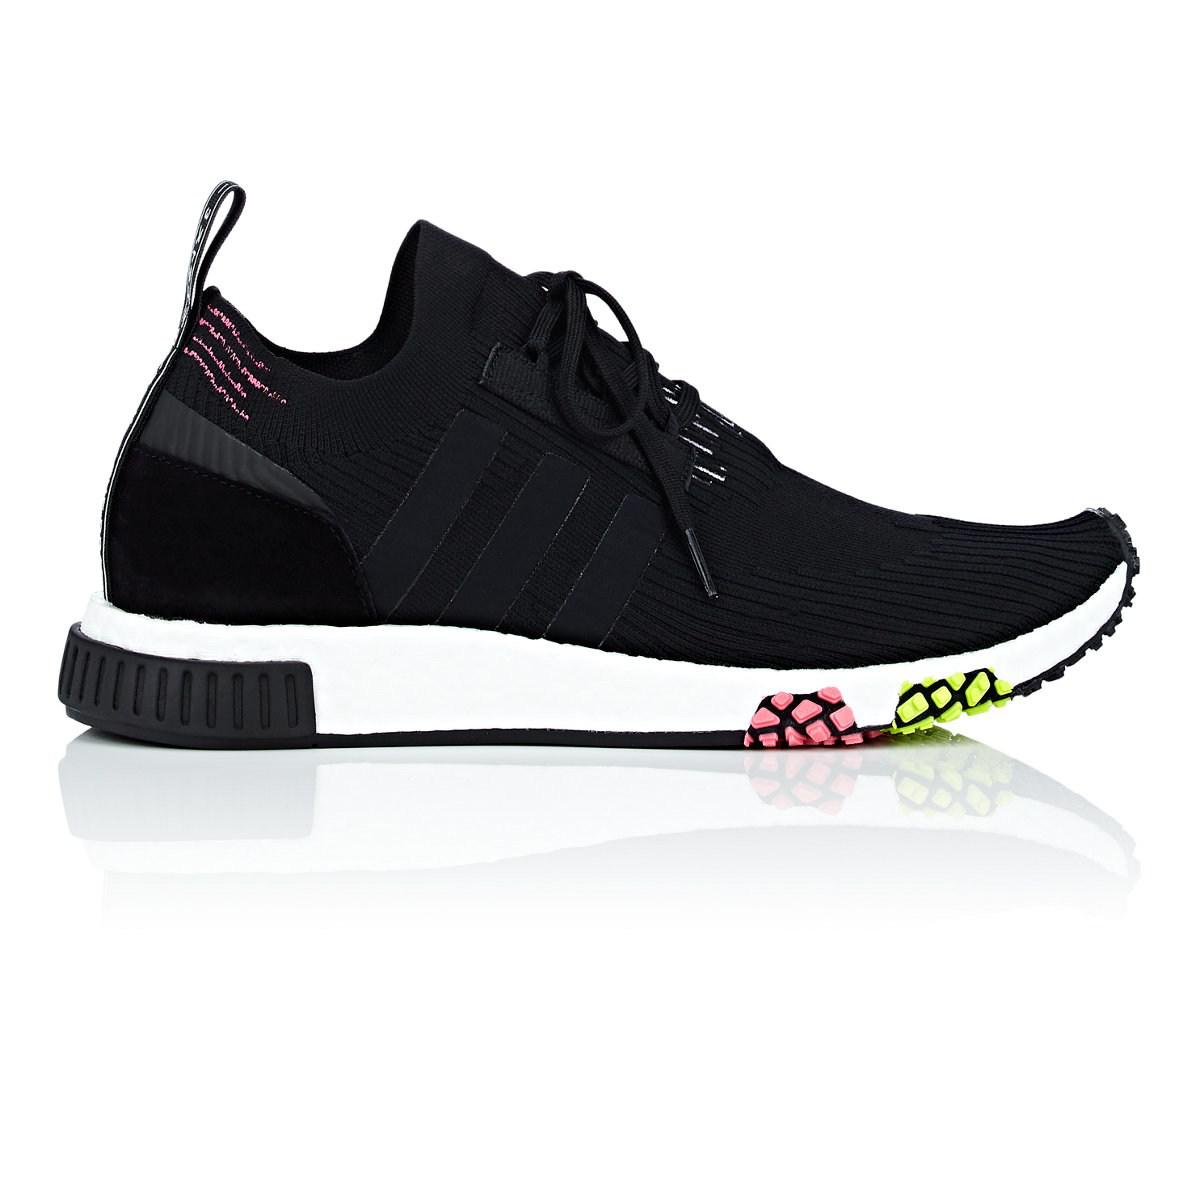 official photos 3b0cd c6083 adidas. Mens Black Nmd Racer Primeknit Trainers